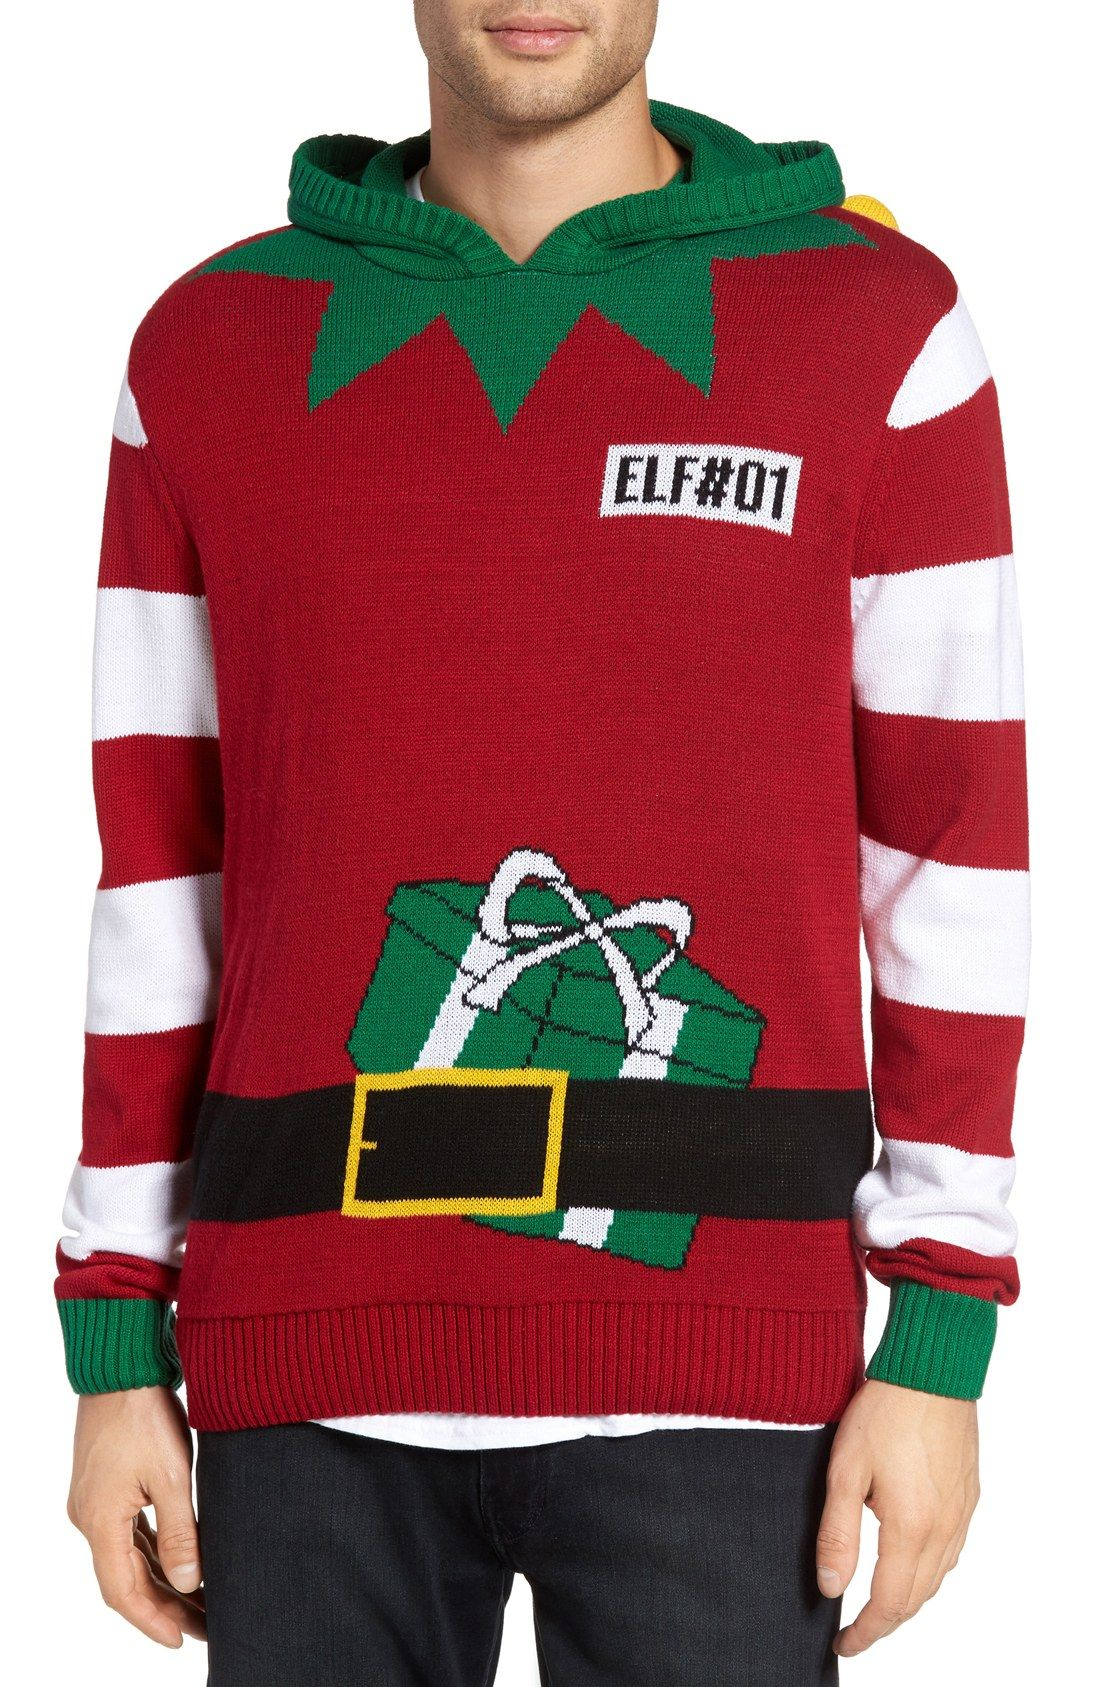 Elf Hooded Sweater   Ugly Christmas Sweaters   Pinterest   Hooded ...